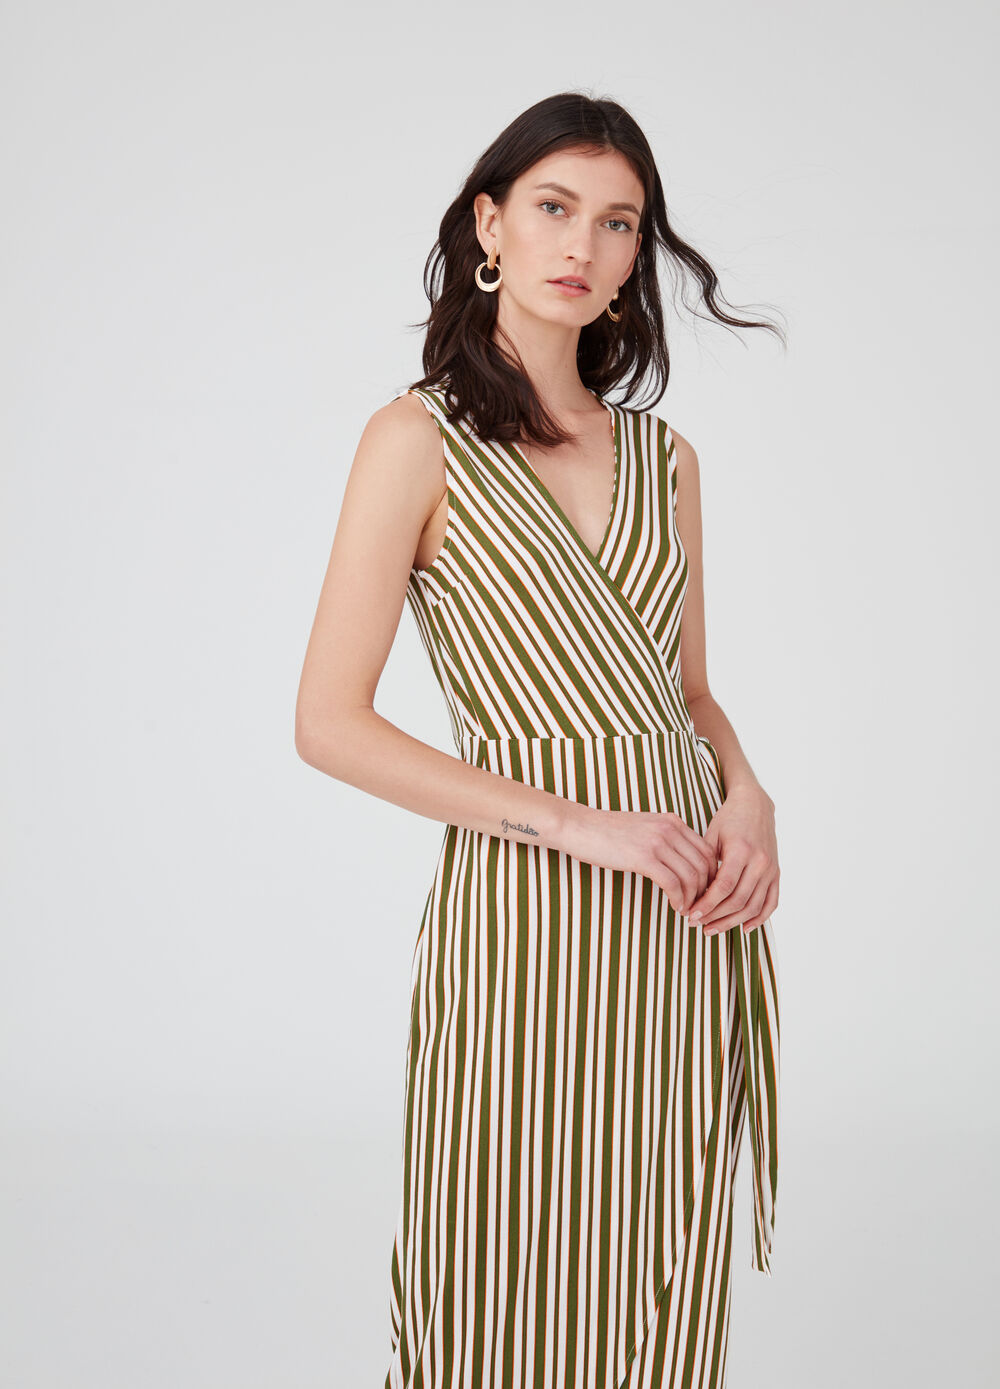 Wraparound striped dress with V-neck